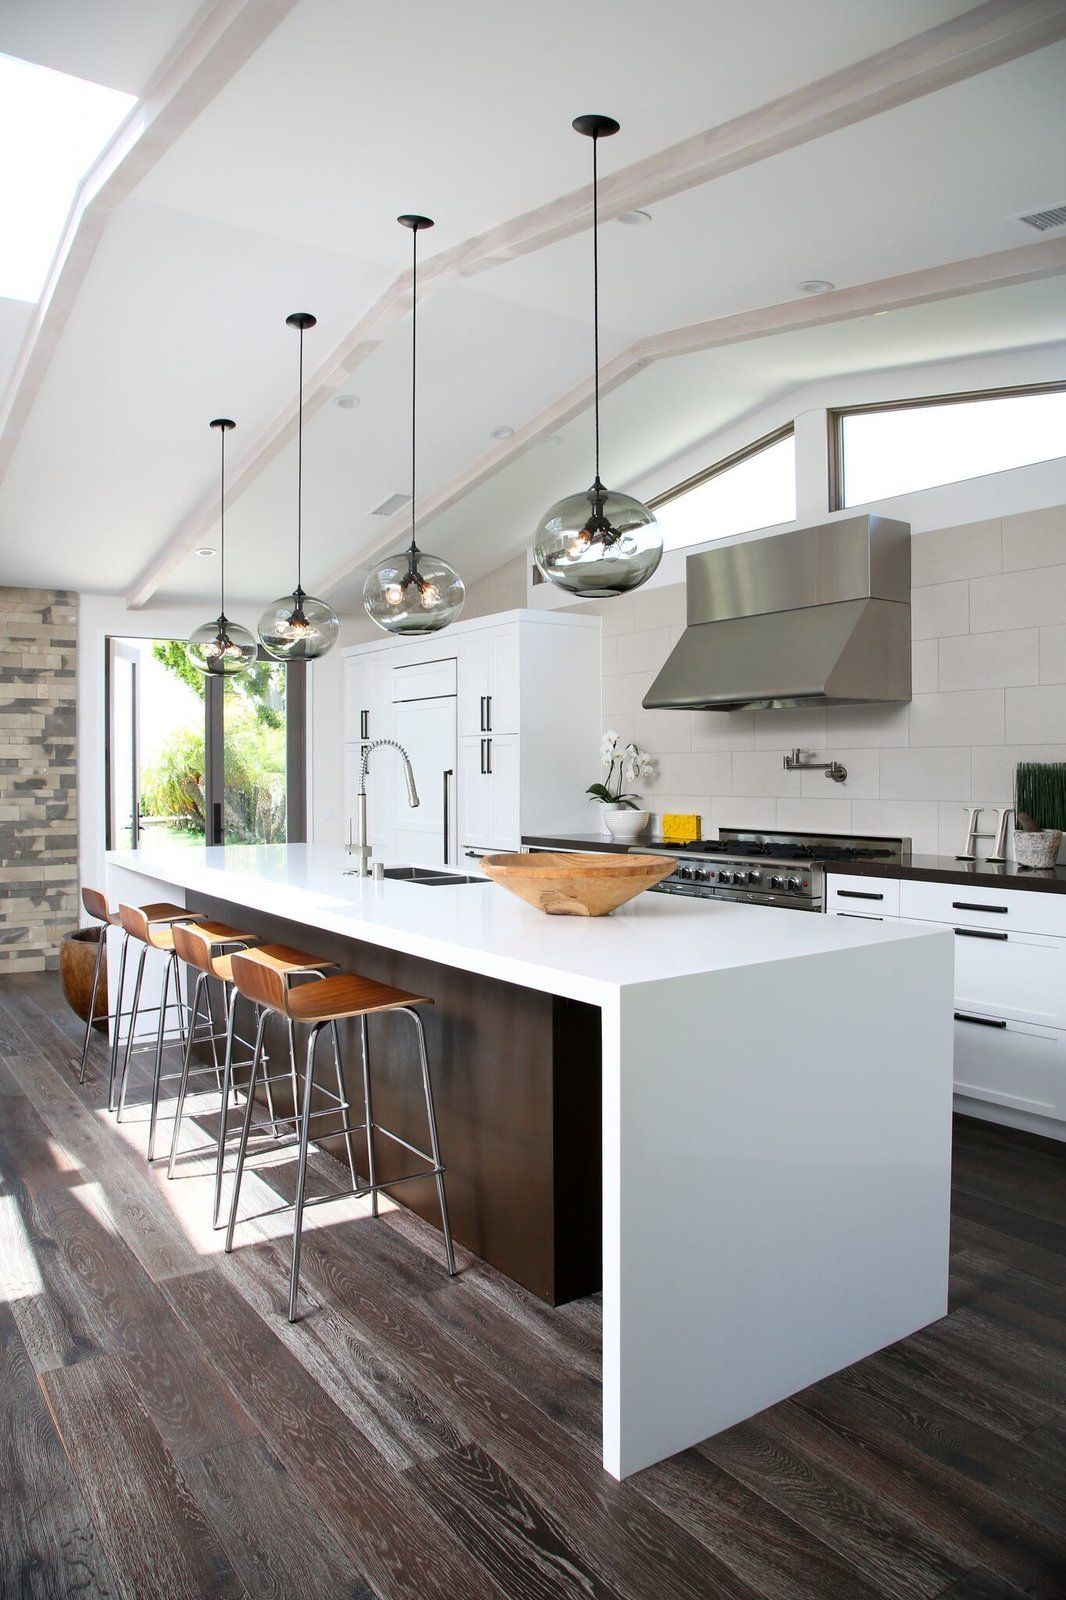 10 Open Kitchen Solutions That Will Get Things Cooking Kitchen